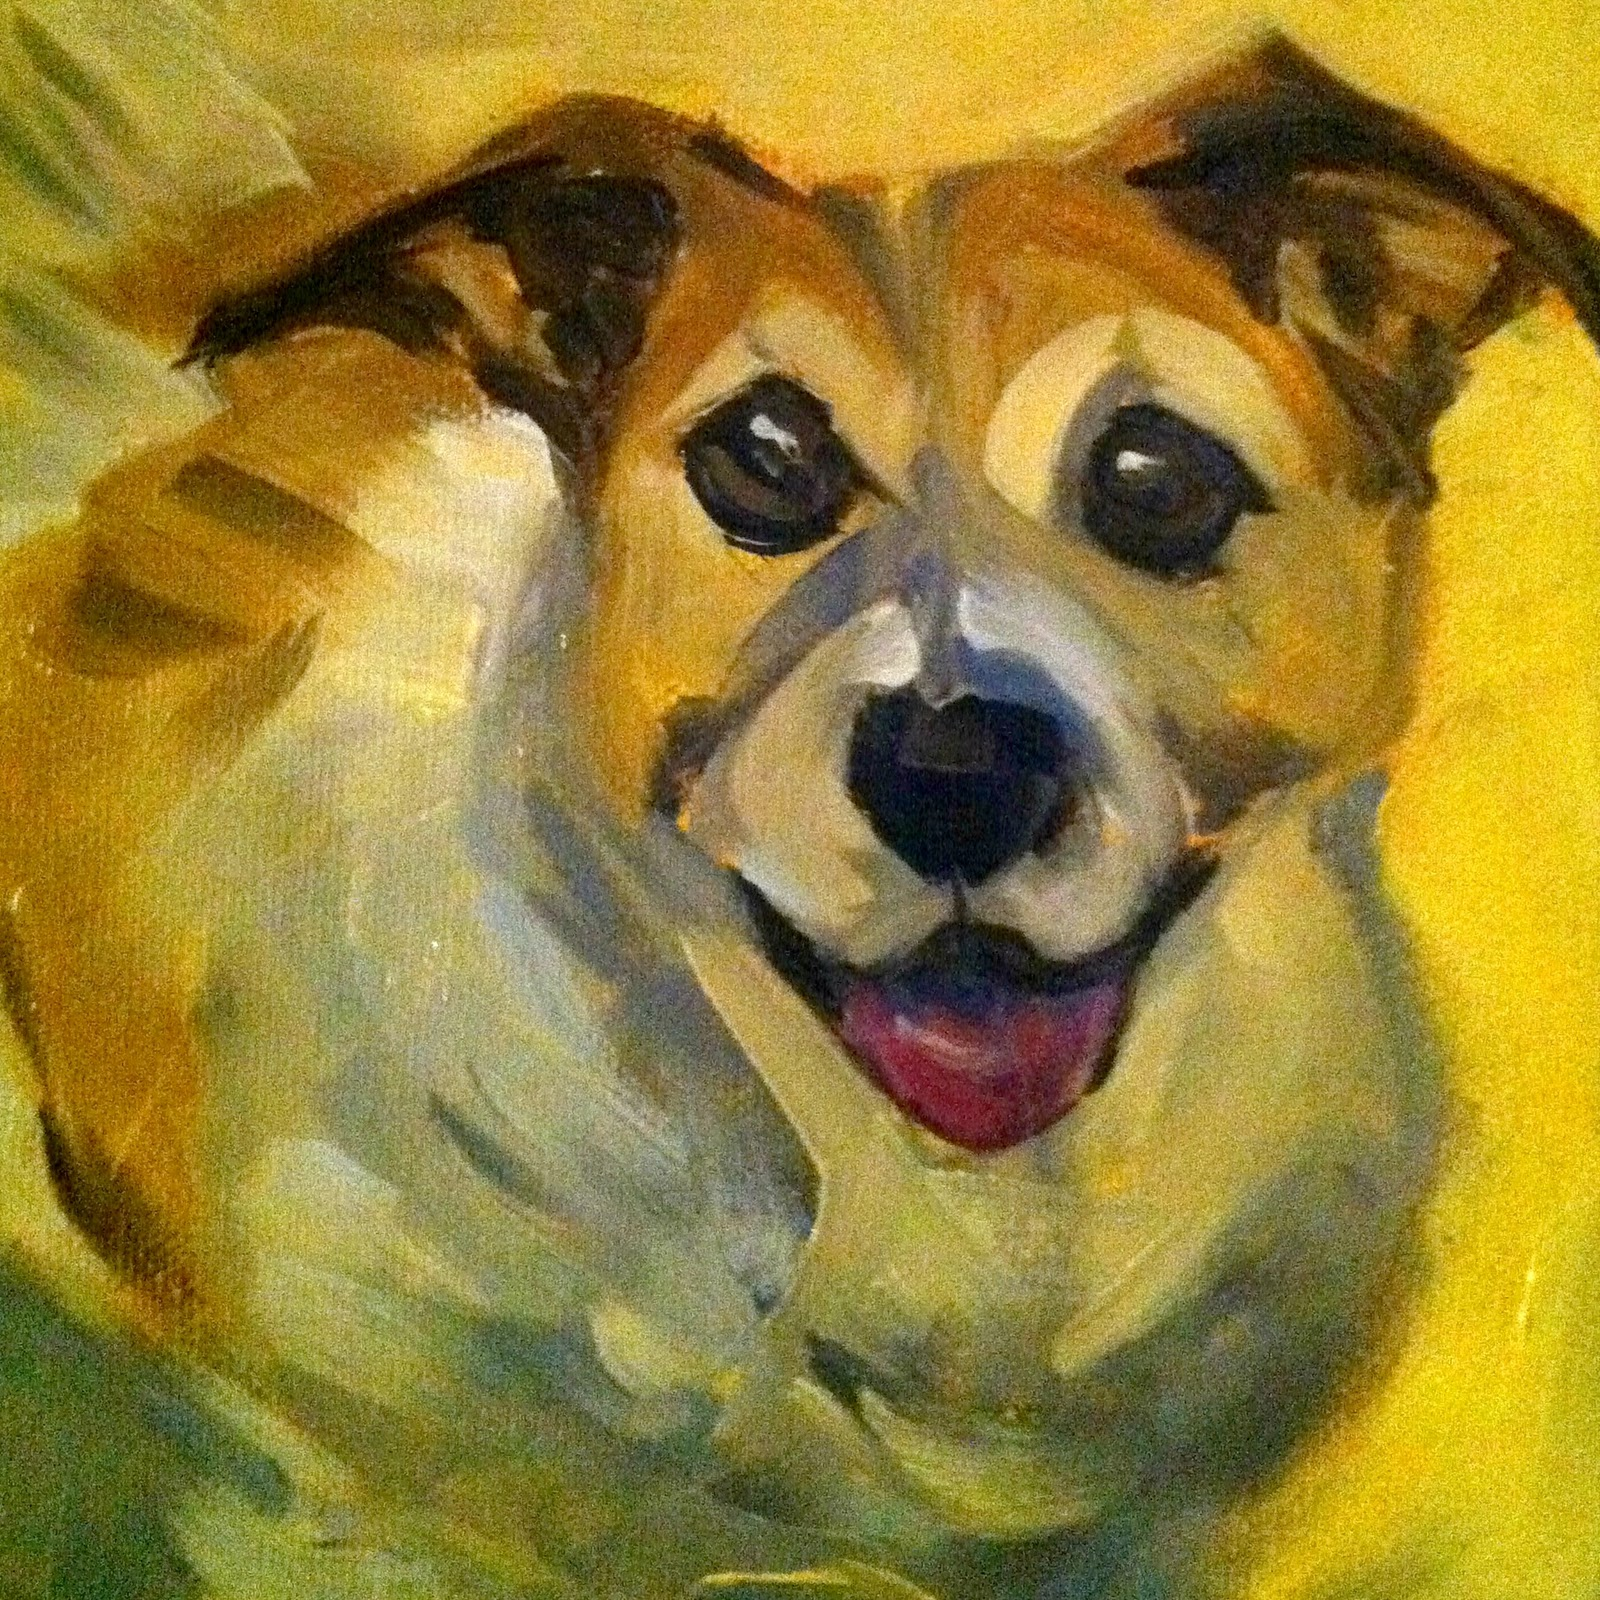 """""""The Best Dog In the World, oil on canvas board, 6x6"""" original fine art by Darlene Young"""